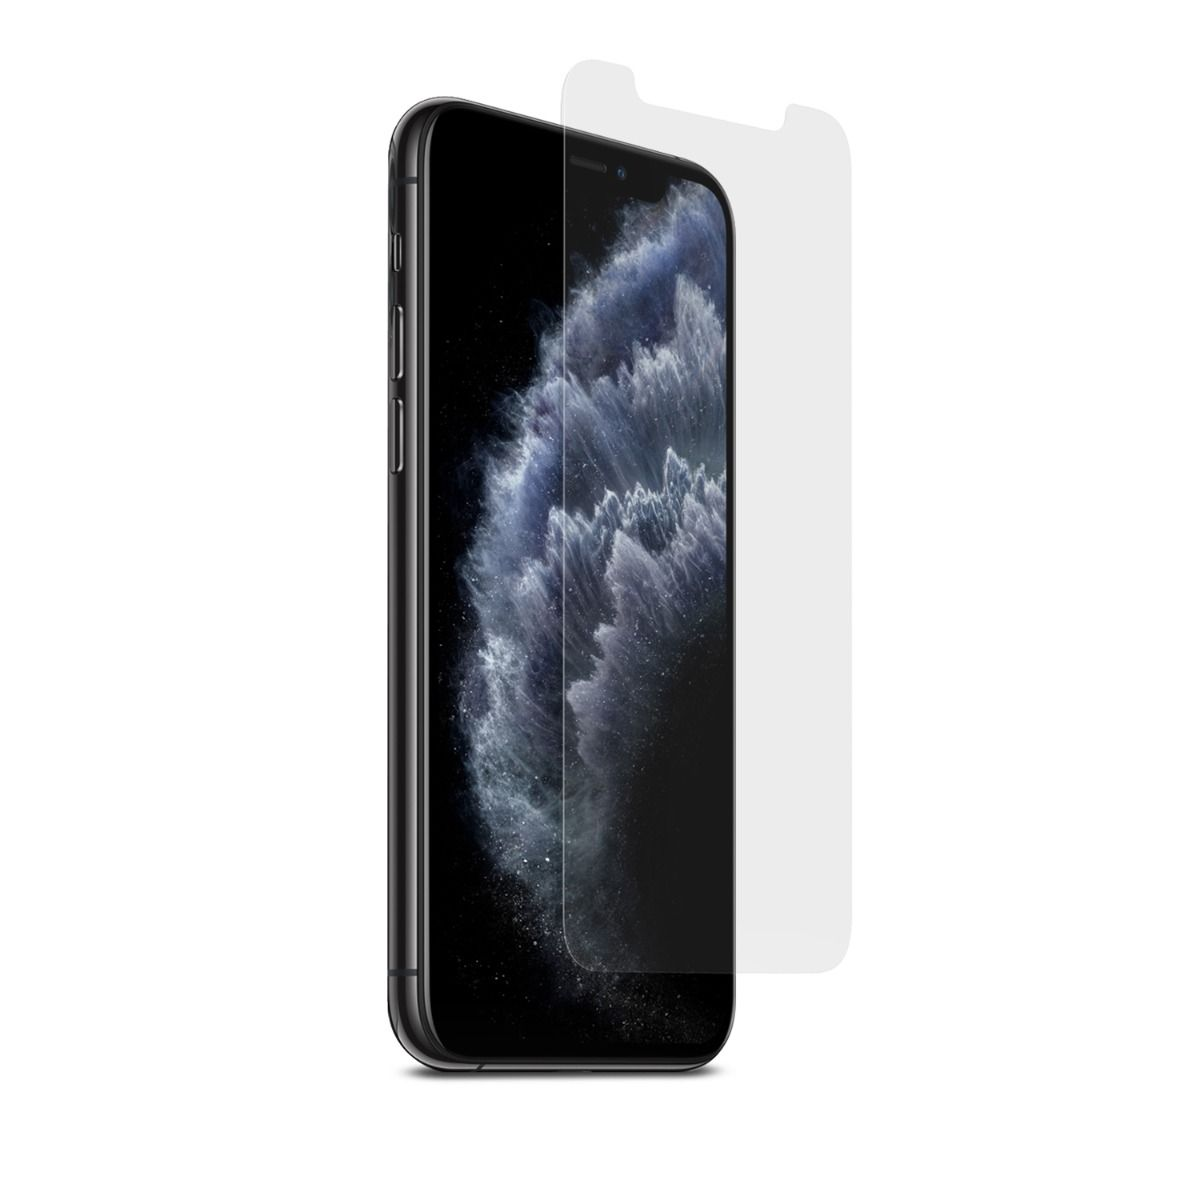 Apple iPhone 11 Pro High-Definition Glass Screen Protector (No Alignment Tray)